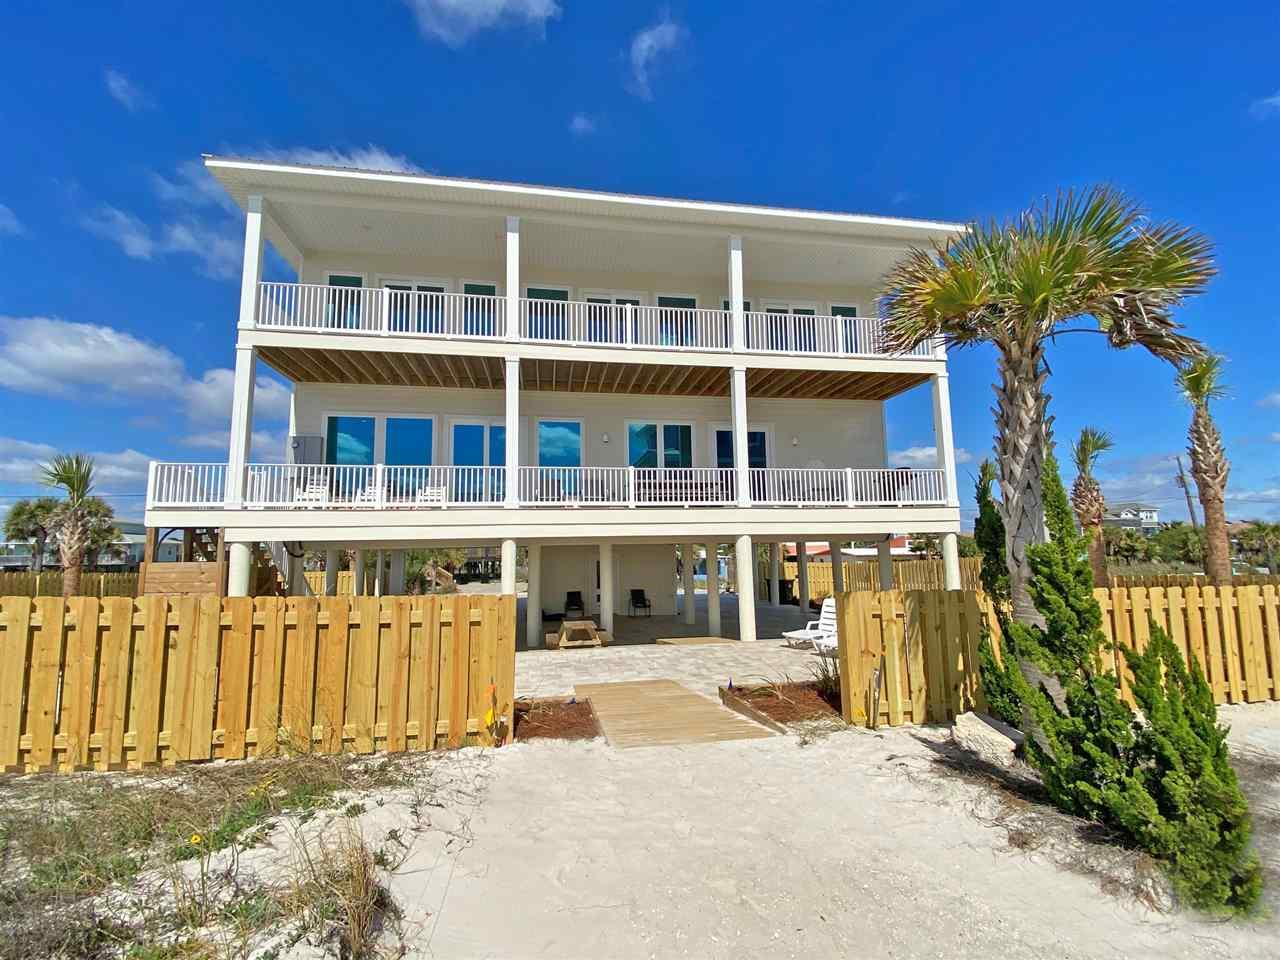 This brand-new contemporary Gulf front home was finished in December 2019. It has incredible Gulf views from every room! This home has six bedrooms & six baths. There is room for large groups to spread out with privacy. There is a large living area on each floor with 65-inch TVs and fabulous views of the Gulf. The house is ADA compliant. The 1st floor has a huge living/dining & kitchen area. The gourmet kitchen has granite counter tops, & stainless-steel appliances, including two dishwashers. A wet bar with a wine/drink cooler is located next to the kitchen area. The two dining tables seat up to 20 people. The kitchen/ breakfast bar seats four. The living area is open, has plenty of seating, and opens onto the 9 x 53 foot covered Gulf front deck. The deck has a big dining table and other seating. There are two bedrooms on this floor. The master suite with a door to the Gulf front deck has a king bed, a queen sleeper sofa. The master bath has double vanity, soaking tub & large shower with a ceiling mounted rain shower and one wall mounted shower. Bedroom 2 has a king bed, and twin bunk bed with views of the Sound & the Gulf. Next to this bedroom is a bathroom with shower which serves this bedroom and the main living area. The upper level of the house features a second, large living area which opens directly to another 9 x 53-foot Gulf front deck. This room (the lounge) has a queen sleeper sofa, comfortable armchairs, and a well equipped kitchenette/bar. There is a 2nd master suite, and another guest room with bath, as well as a 3rd master suite. The ADA compliant bedroom and bath is on this floor. House sleeps 25. There is covered parking for six cars & six on the driveways, & outdoor H/C shower. The yard is fully fenced with a large patio with pavers - the perfect place for parties! The garden is lushly landscaped. This beautiful house, with elevator, garden & 45 X 53-foot, open, covered space under the house, is a perfect vacation rental.